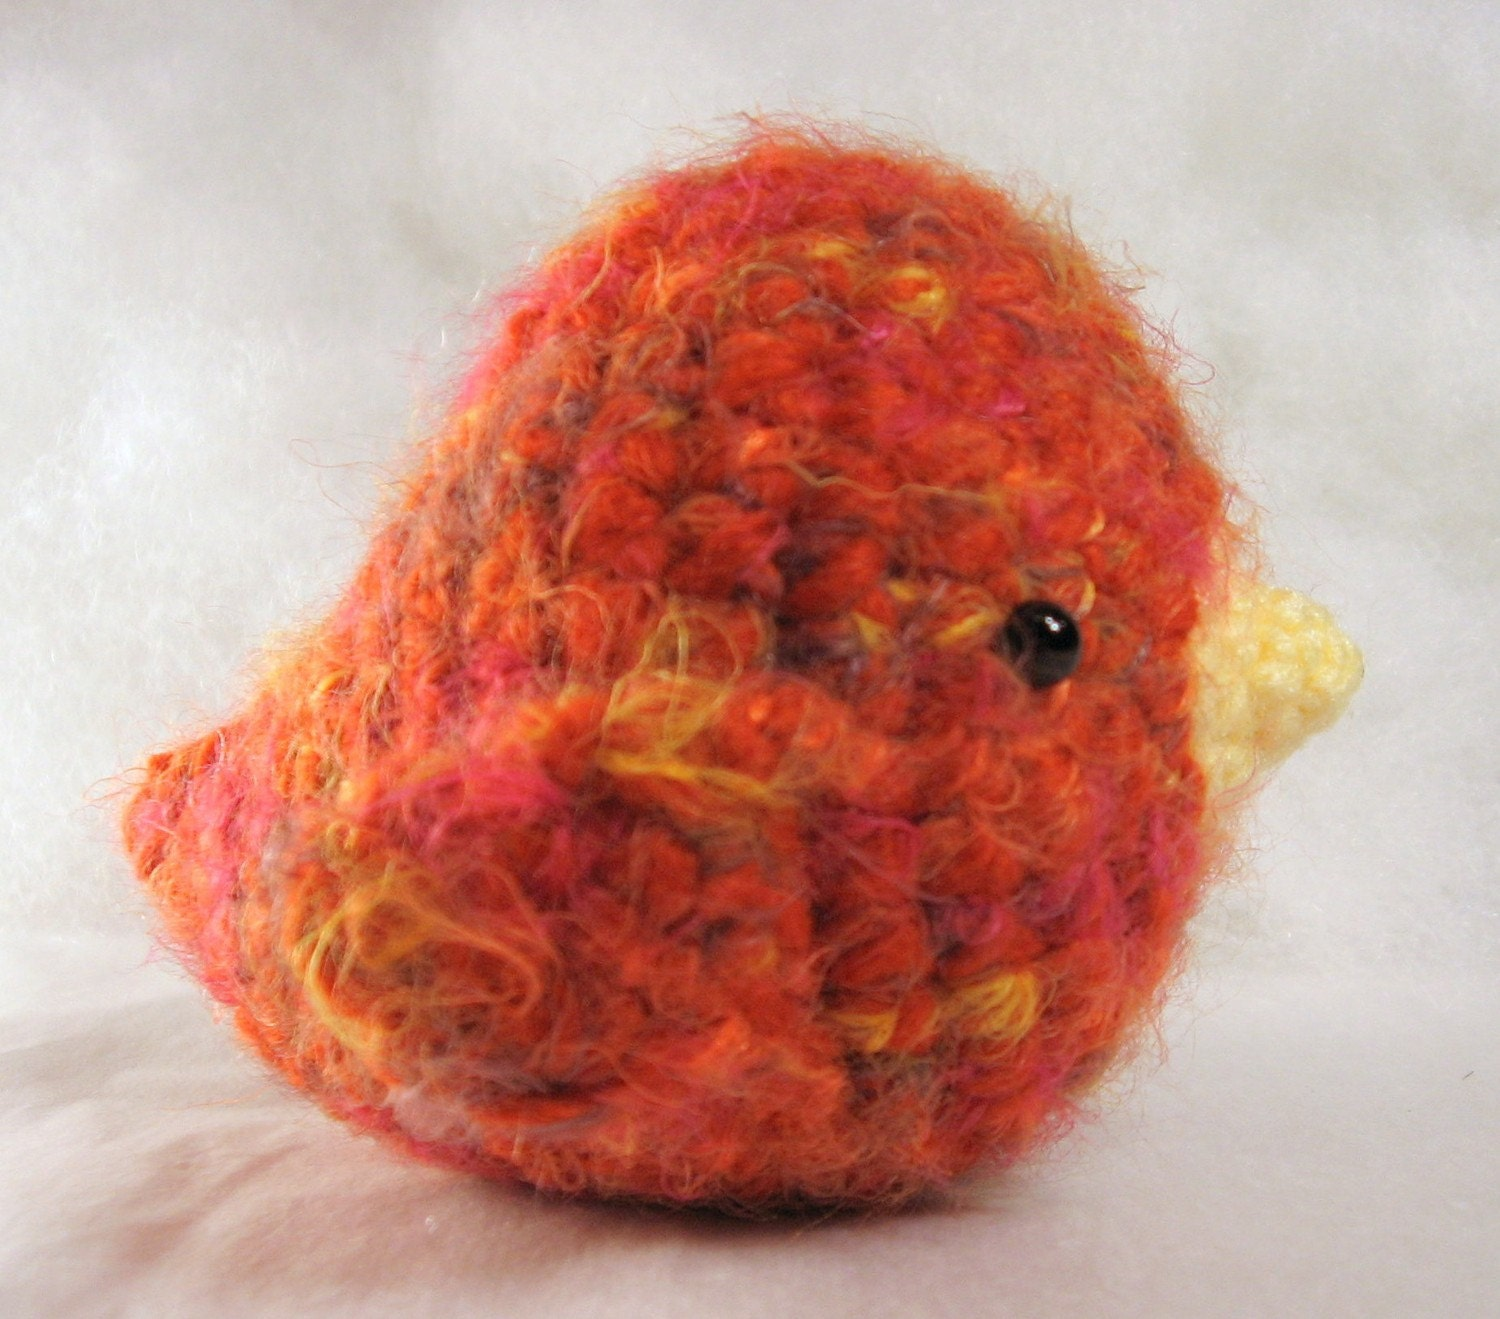 Crochet Amigurumi Birds : Amigurumi Crochet Pattern Sweet Little Birds by HomemadeZen